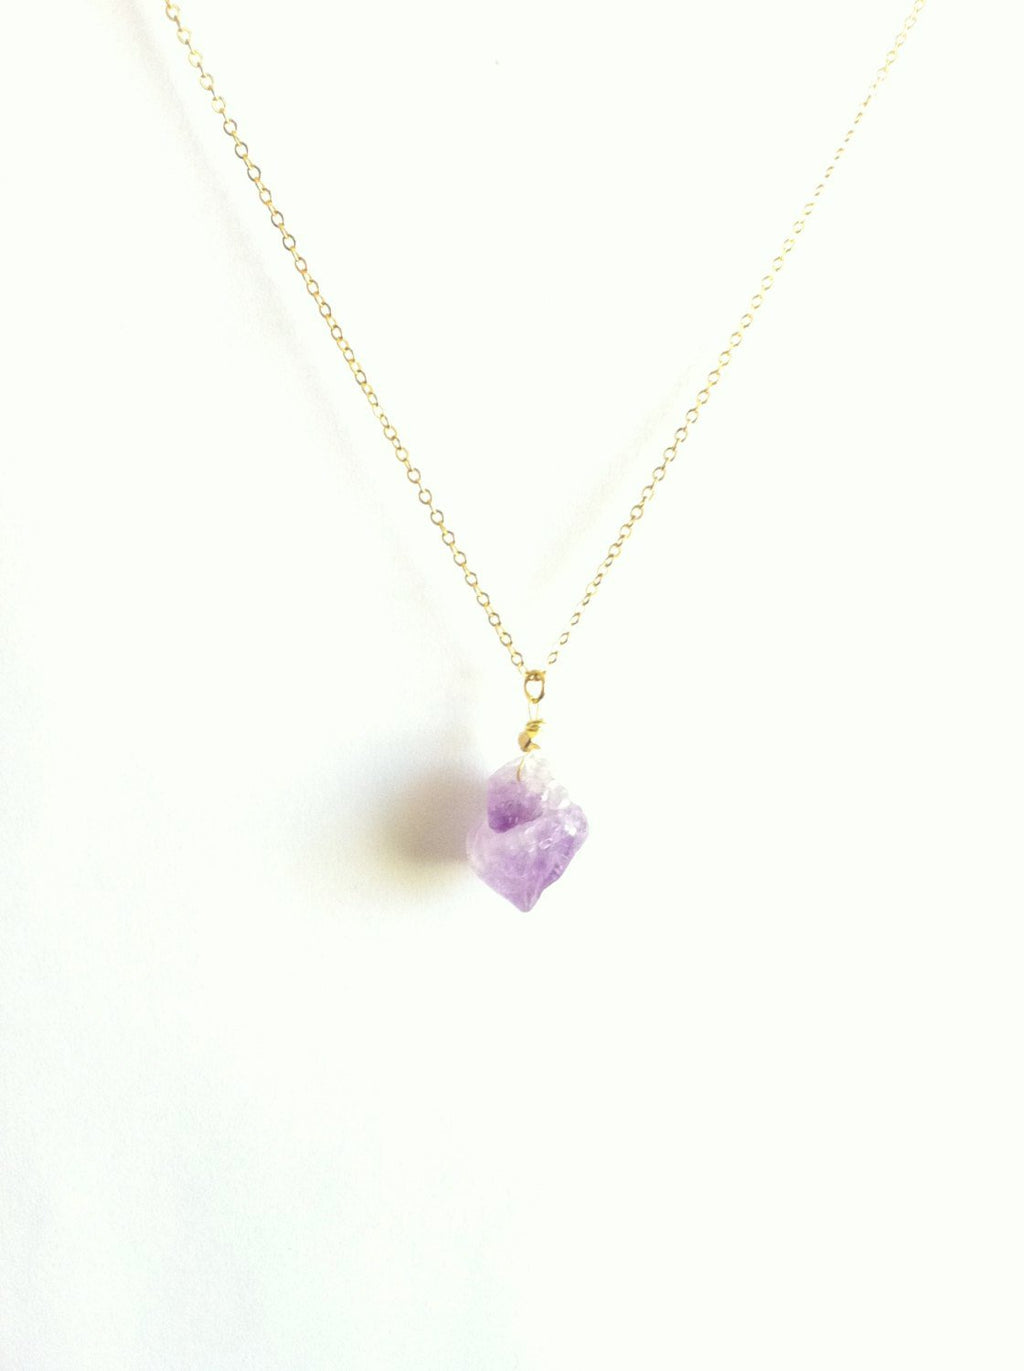 Delicate Raw Amethyst Gemstone Necklace | IB Jewelry